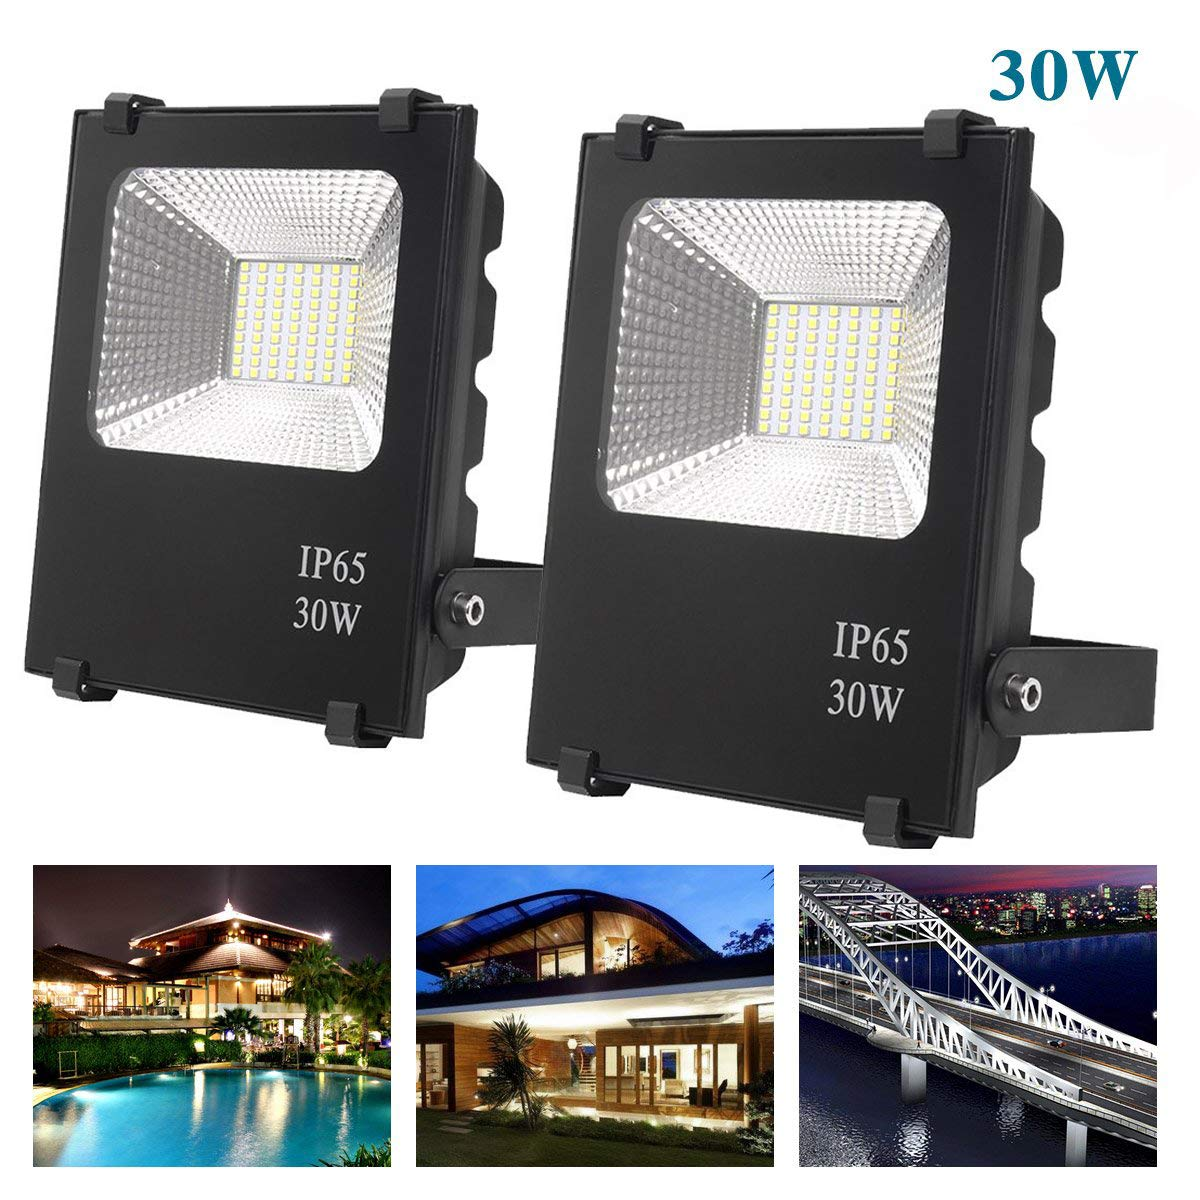 200W LED Floodlights Cool White Outdoor Garden Wall Security Flood Light 220V